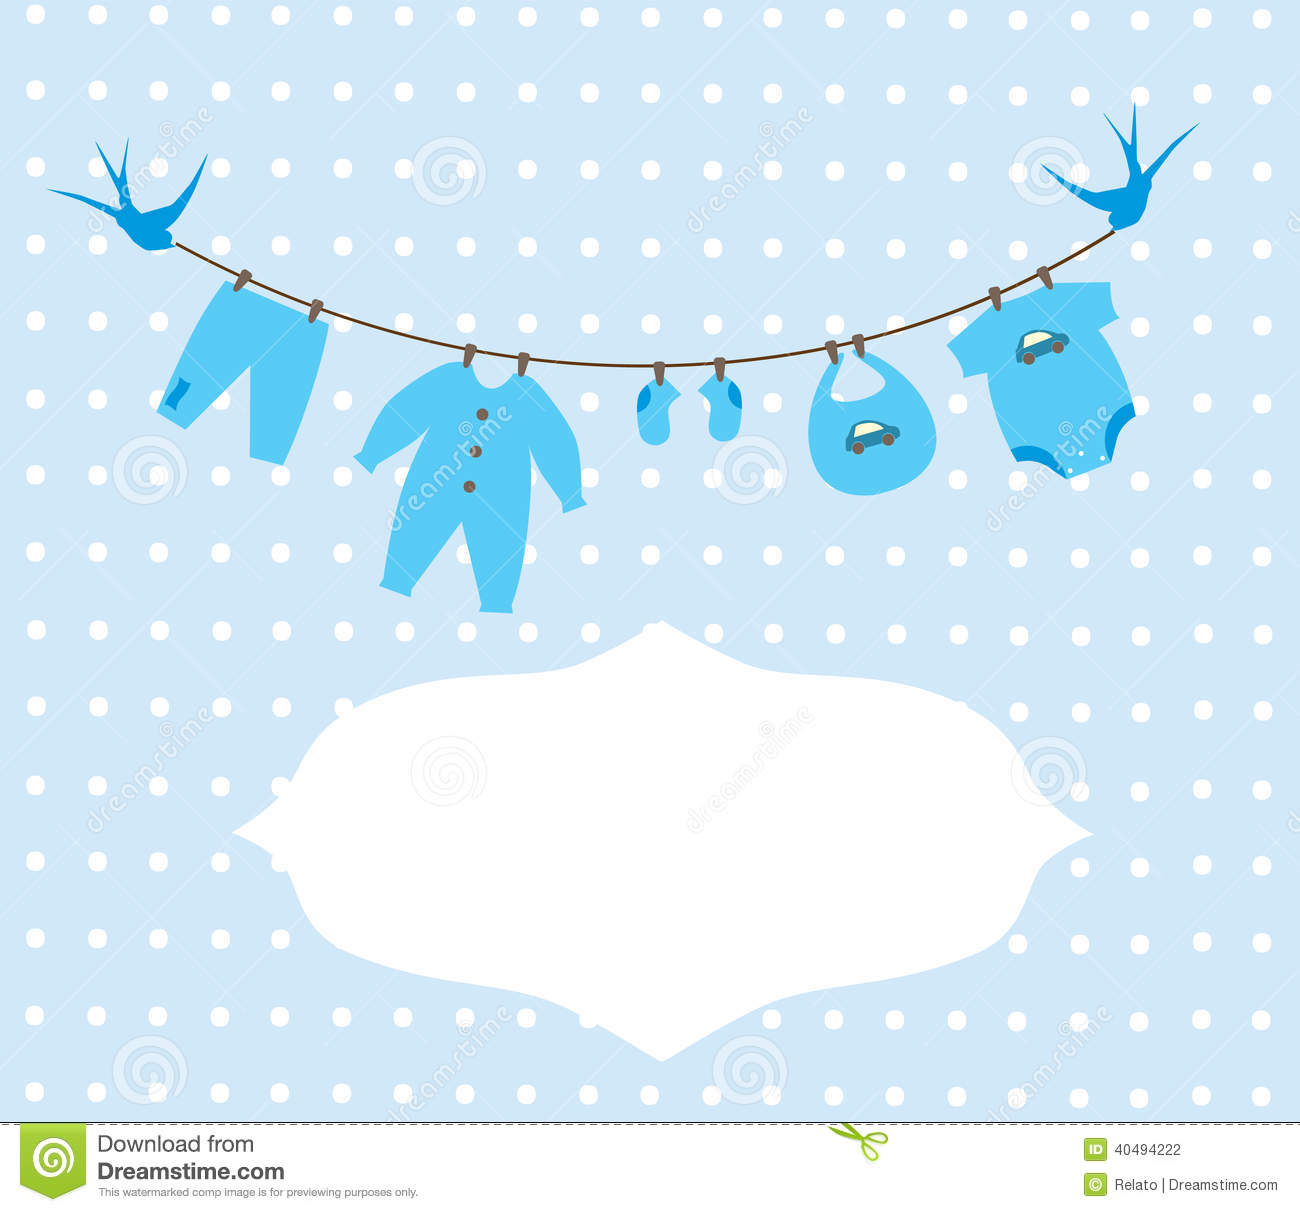 Baby Clothes Stock Vector - Image: 40494222